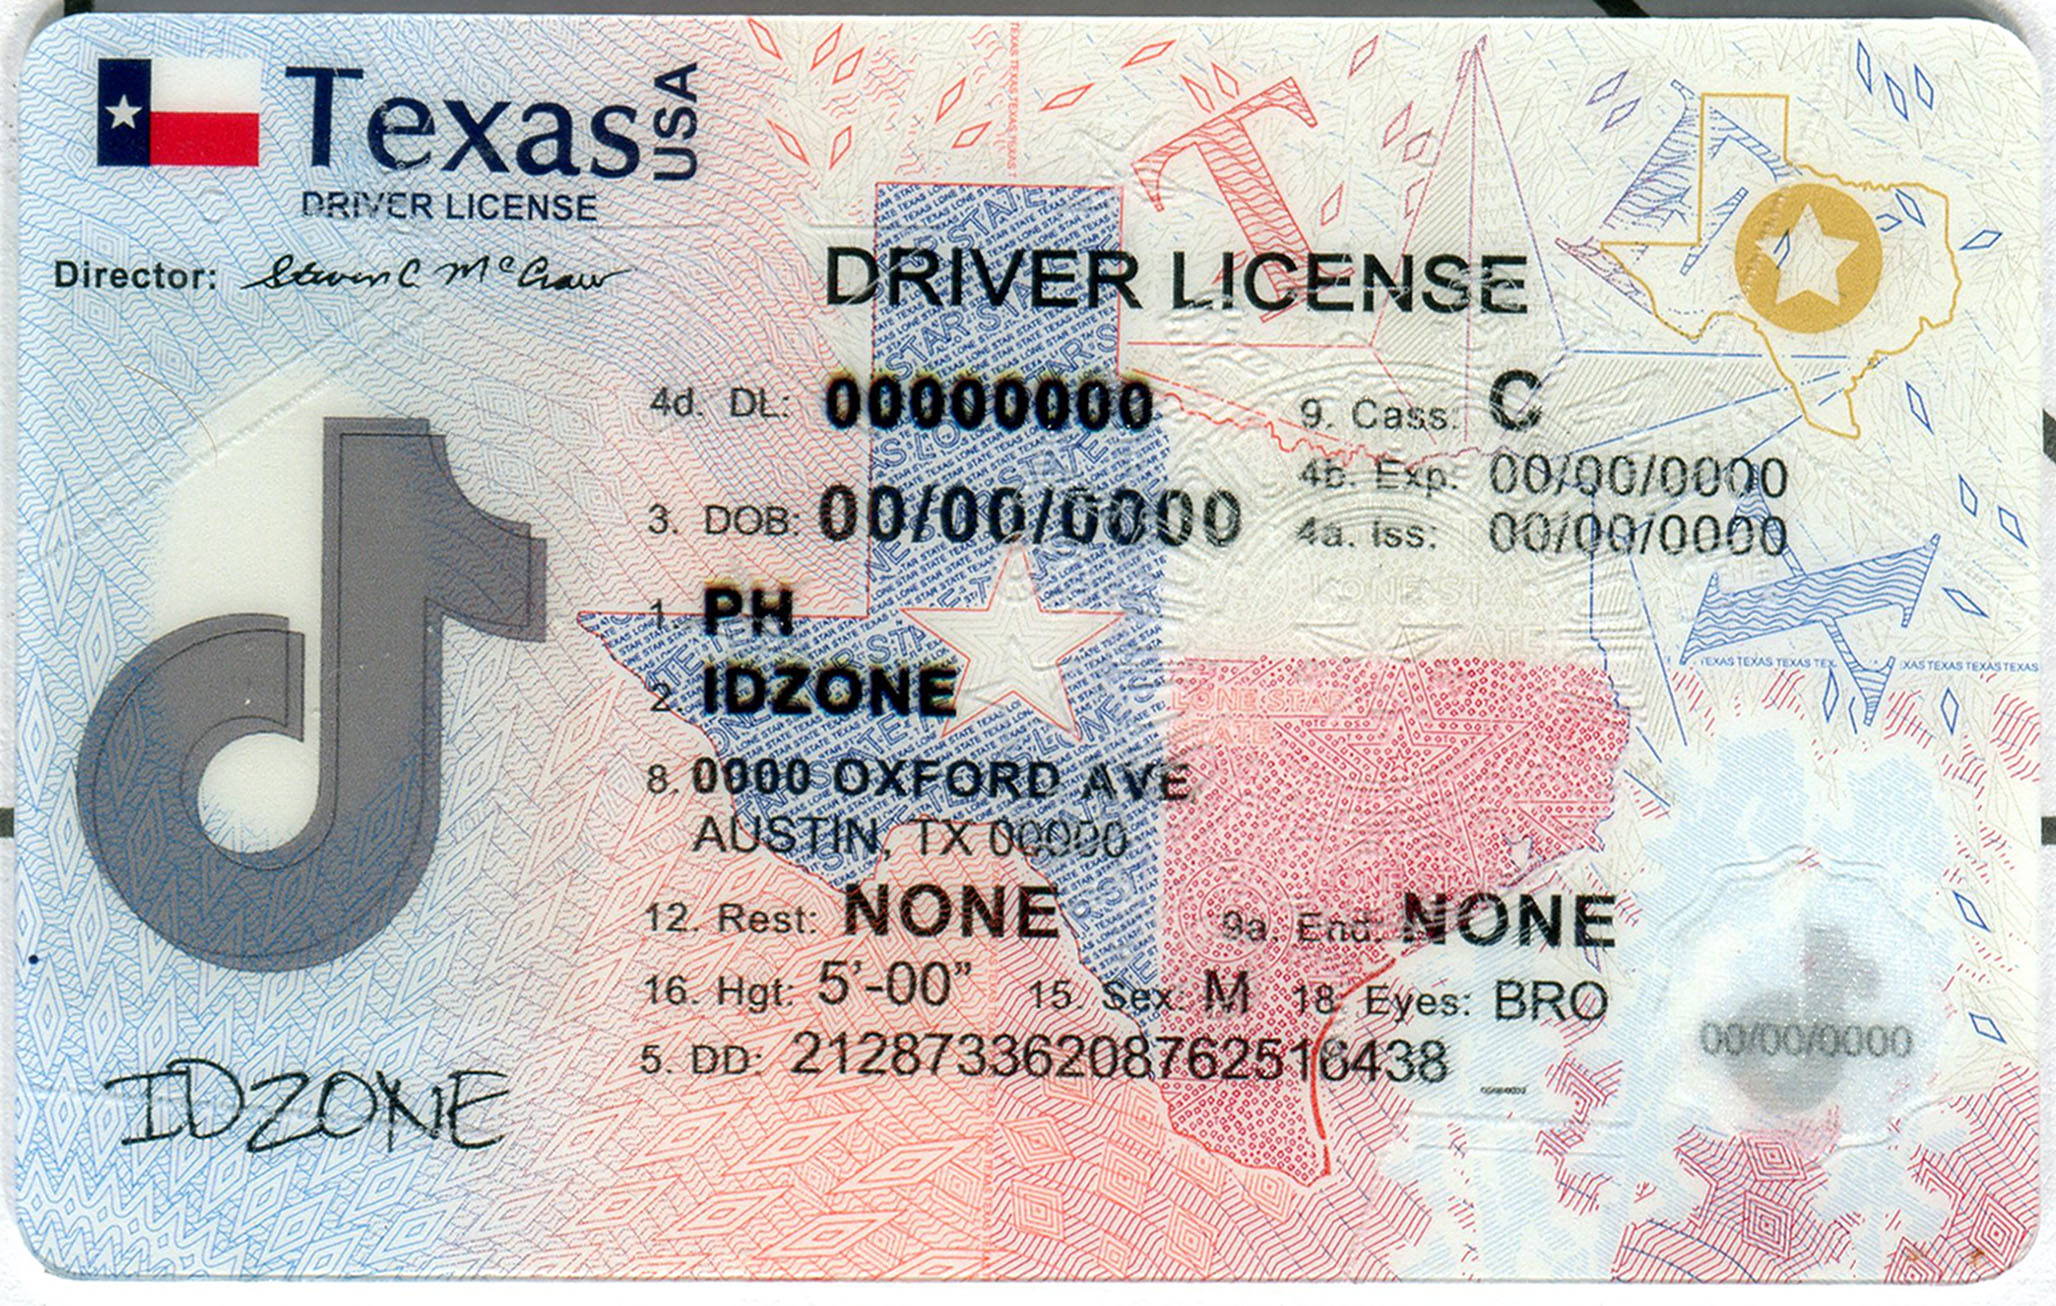 TEXAS-New fake id